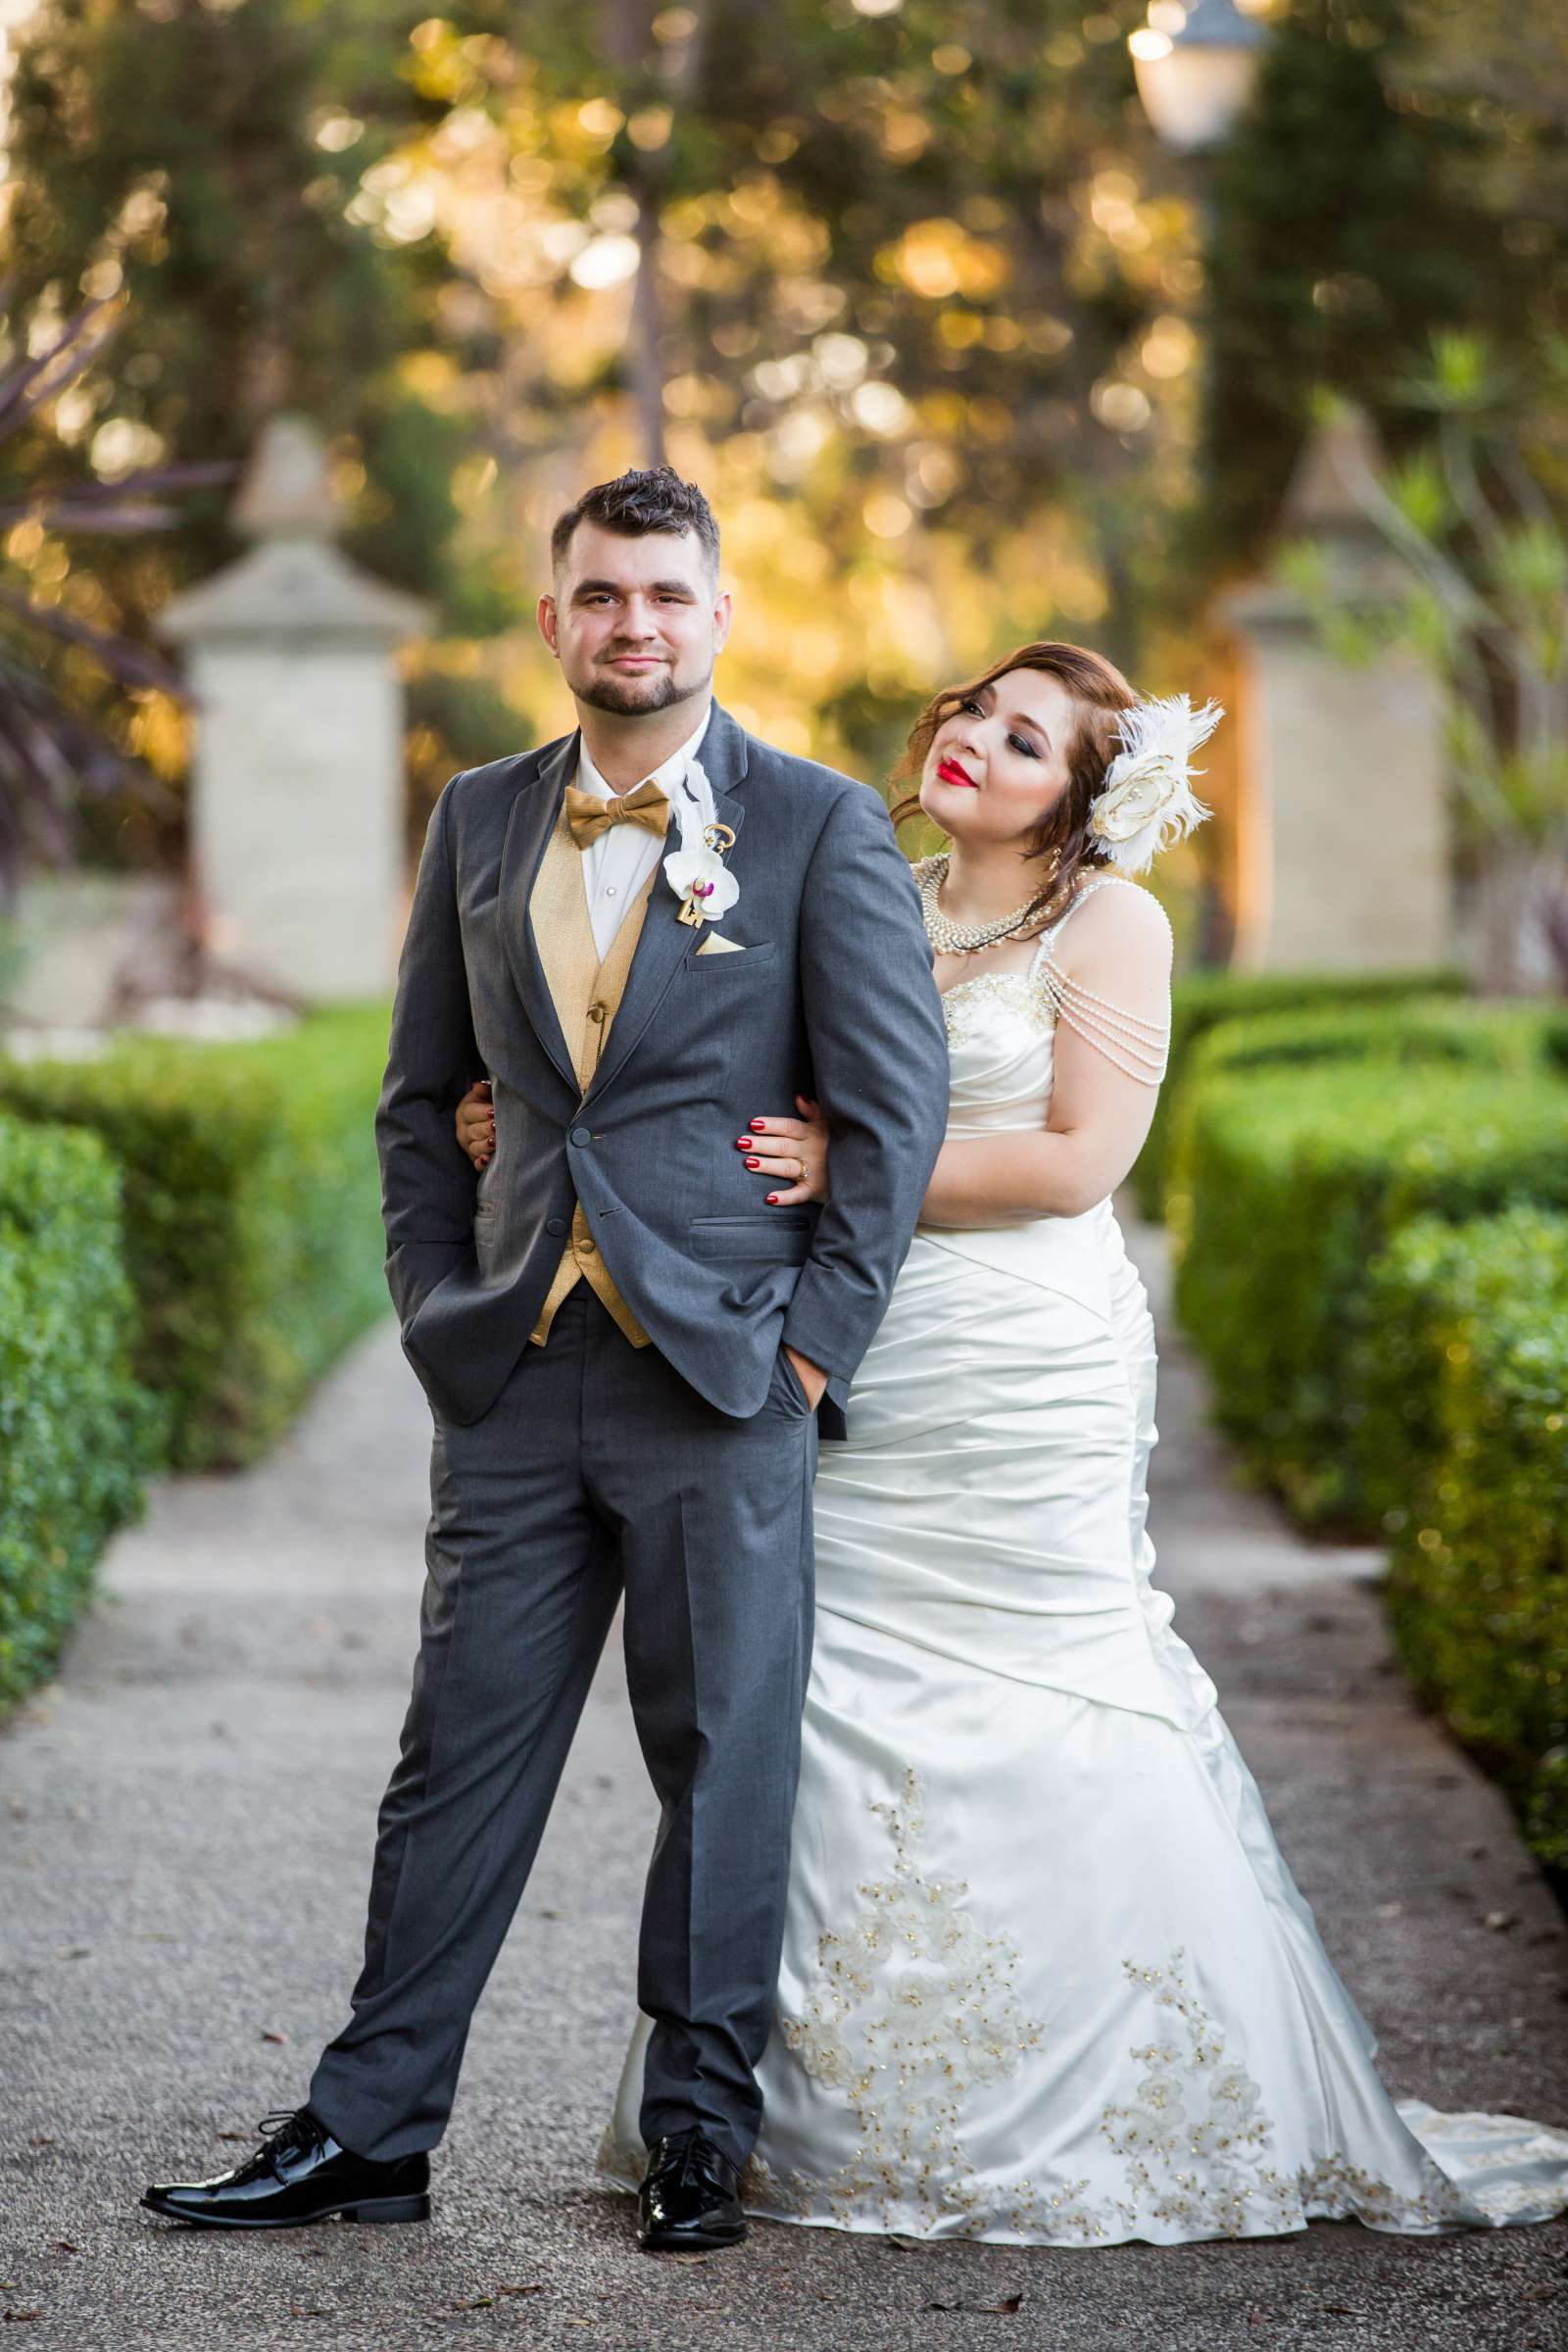 The Prado Wedding coordinated by Breezy Day Weddings, Aalis and Michael Wedding Photo #80 by True Photography